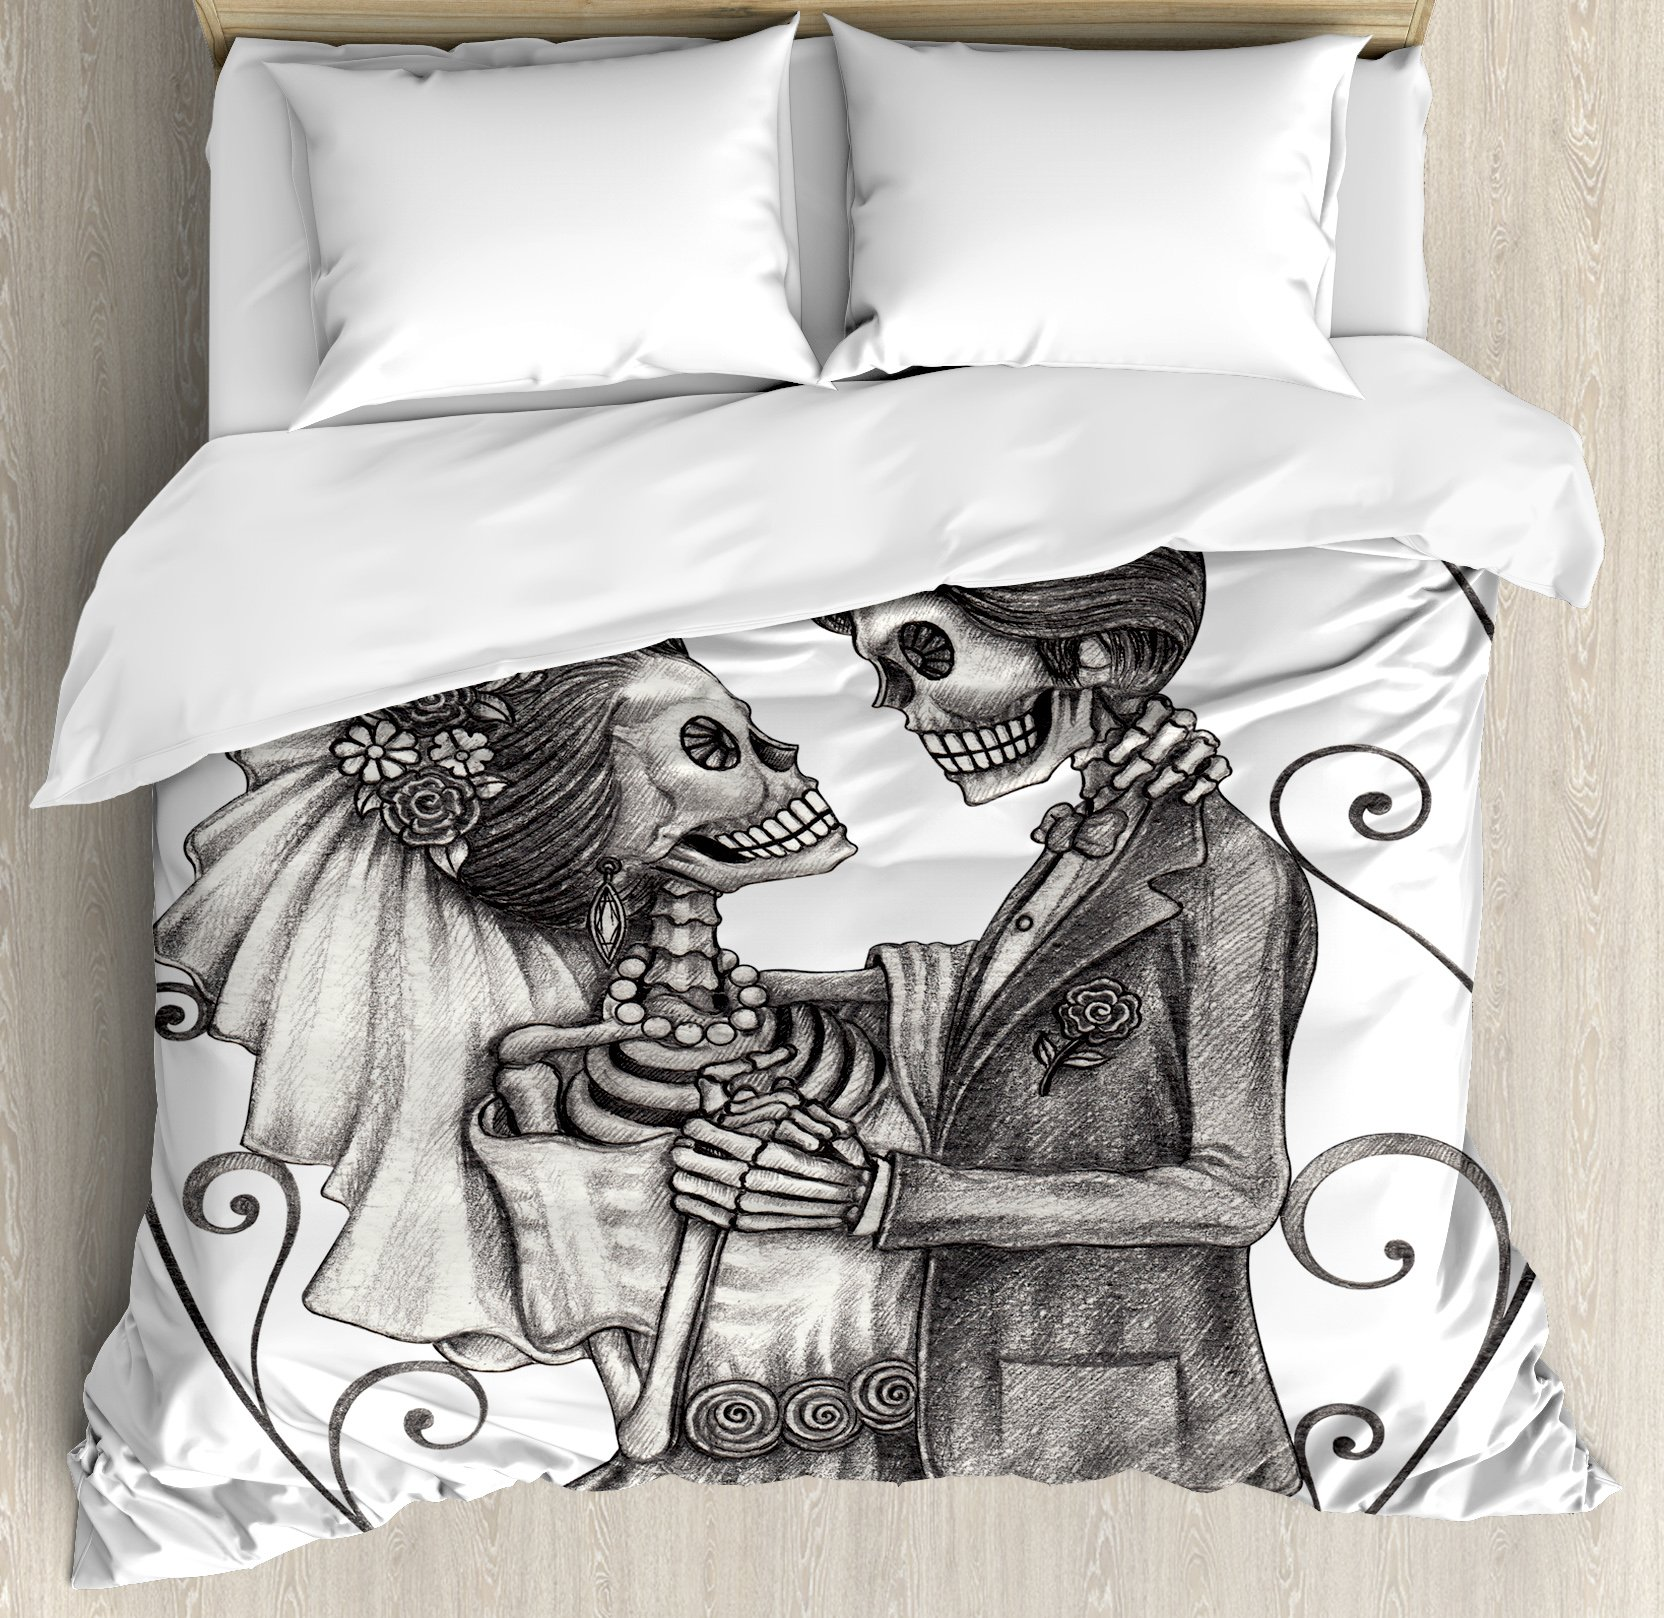 Ambesonne Day Of The Dead Decor Duvet Cover Set, Love Valentine's Skull Skeleton Marriage Eternal Spanish Festive Art, 3 Piece Bedding Set with Pillow Shams, King Size, Dimgrey and White